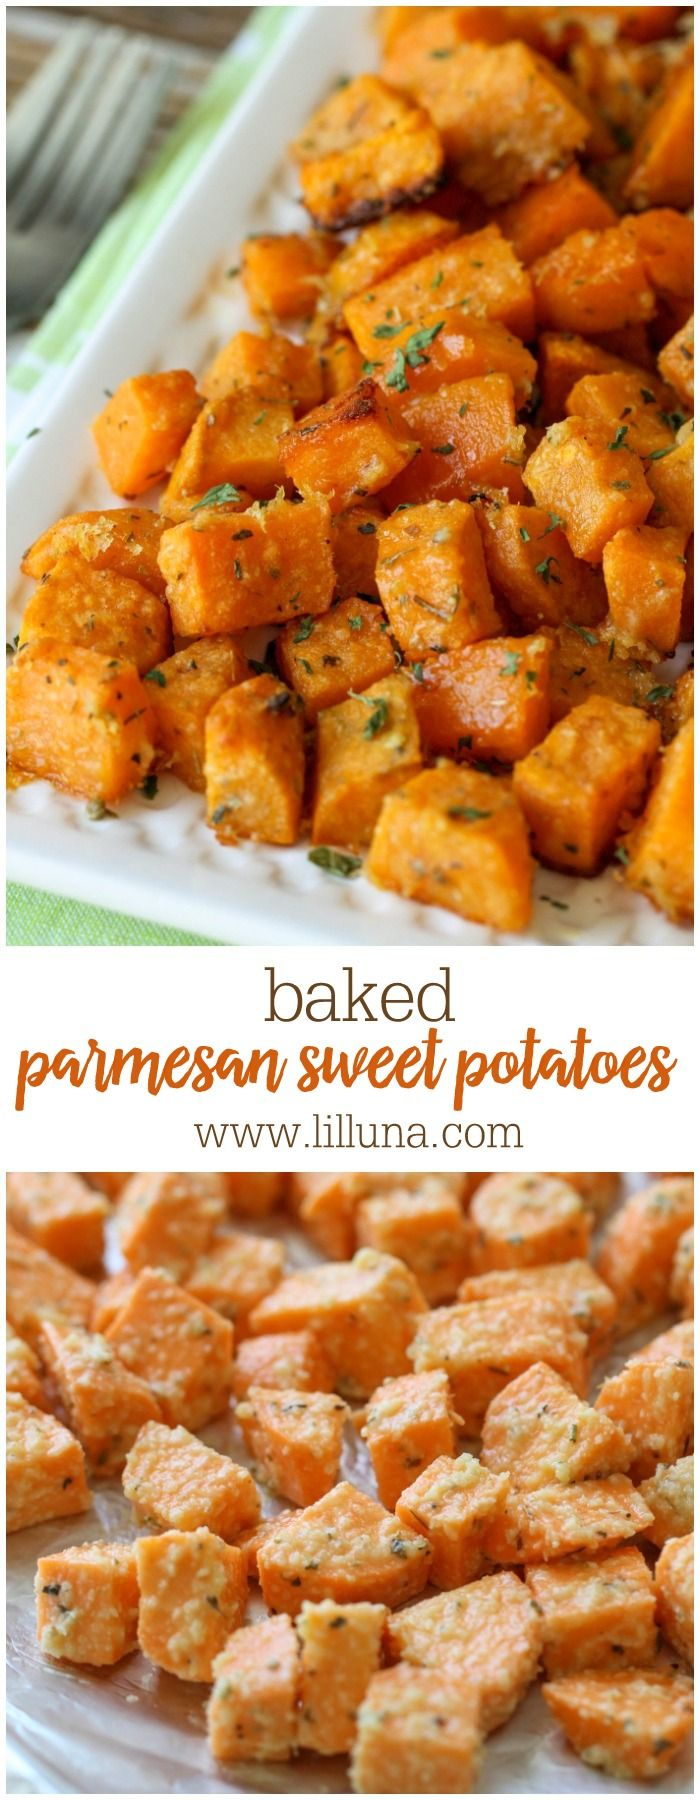 Baked Parmesan Sweet Potatoes - my new favorite side dish recipe.